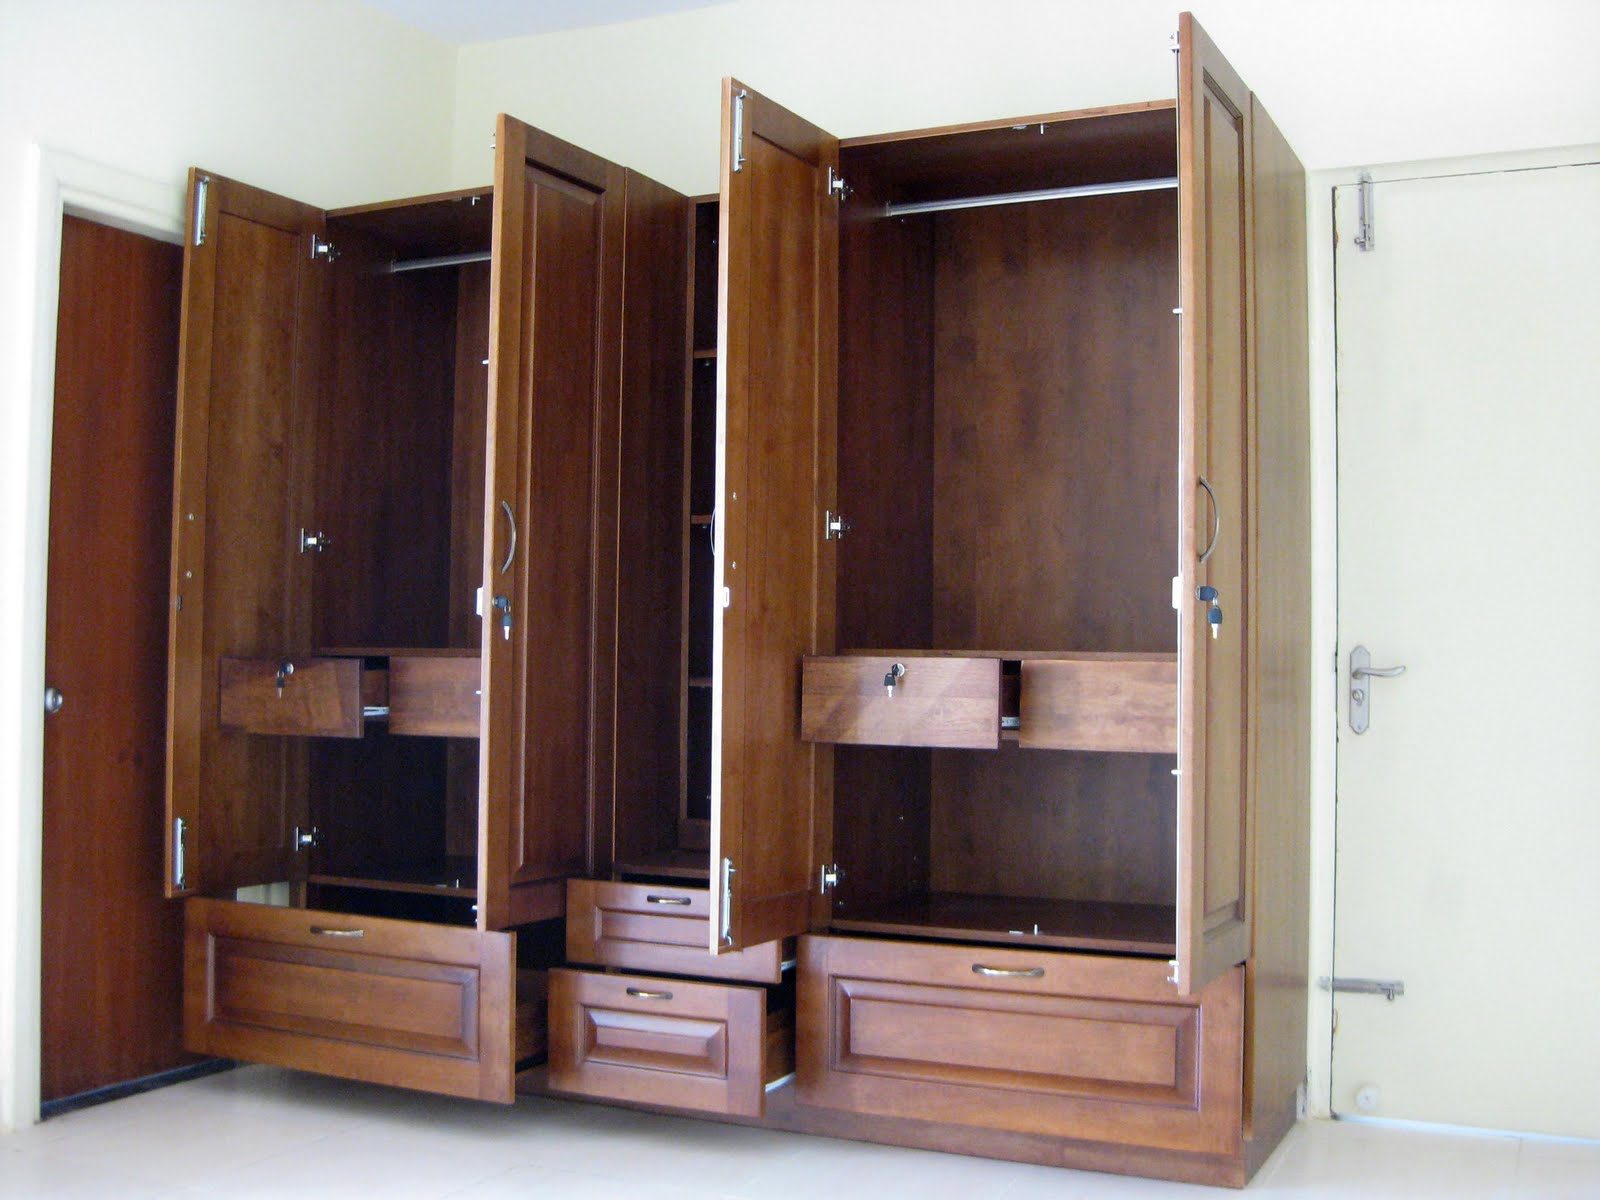 Armoire Storage Cabinet | Armoires for Hanging Clothes | Cheap Wardrobe Closet